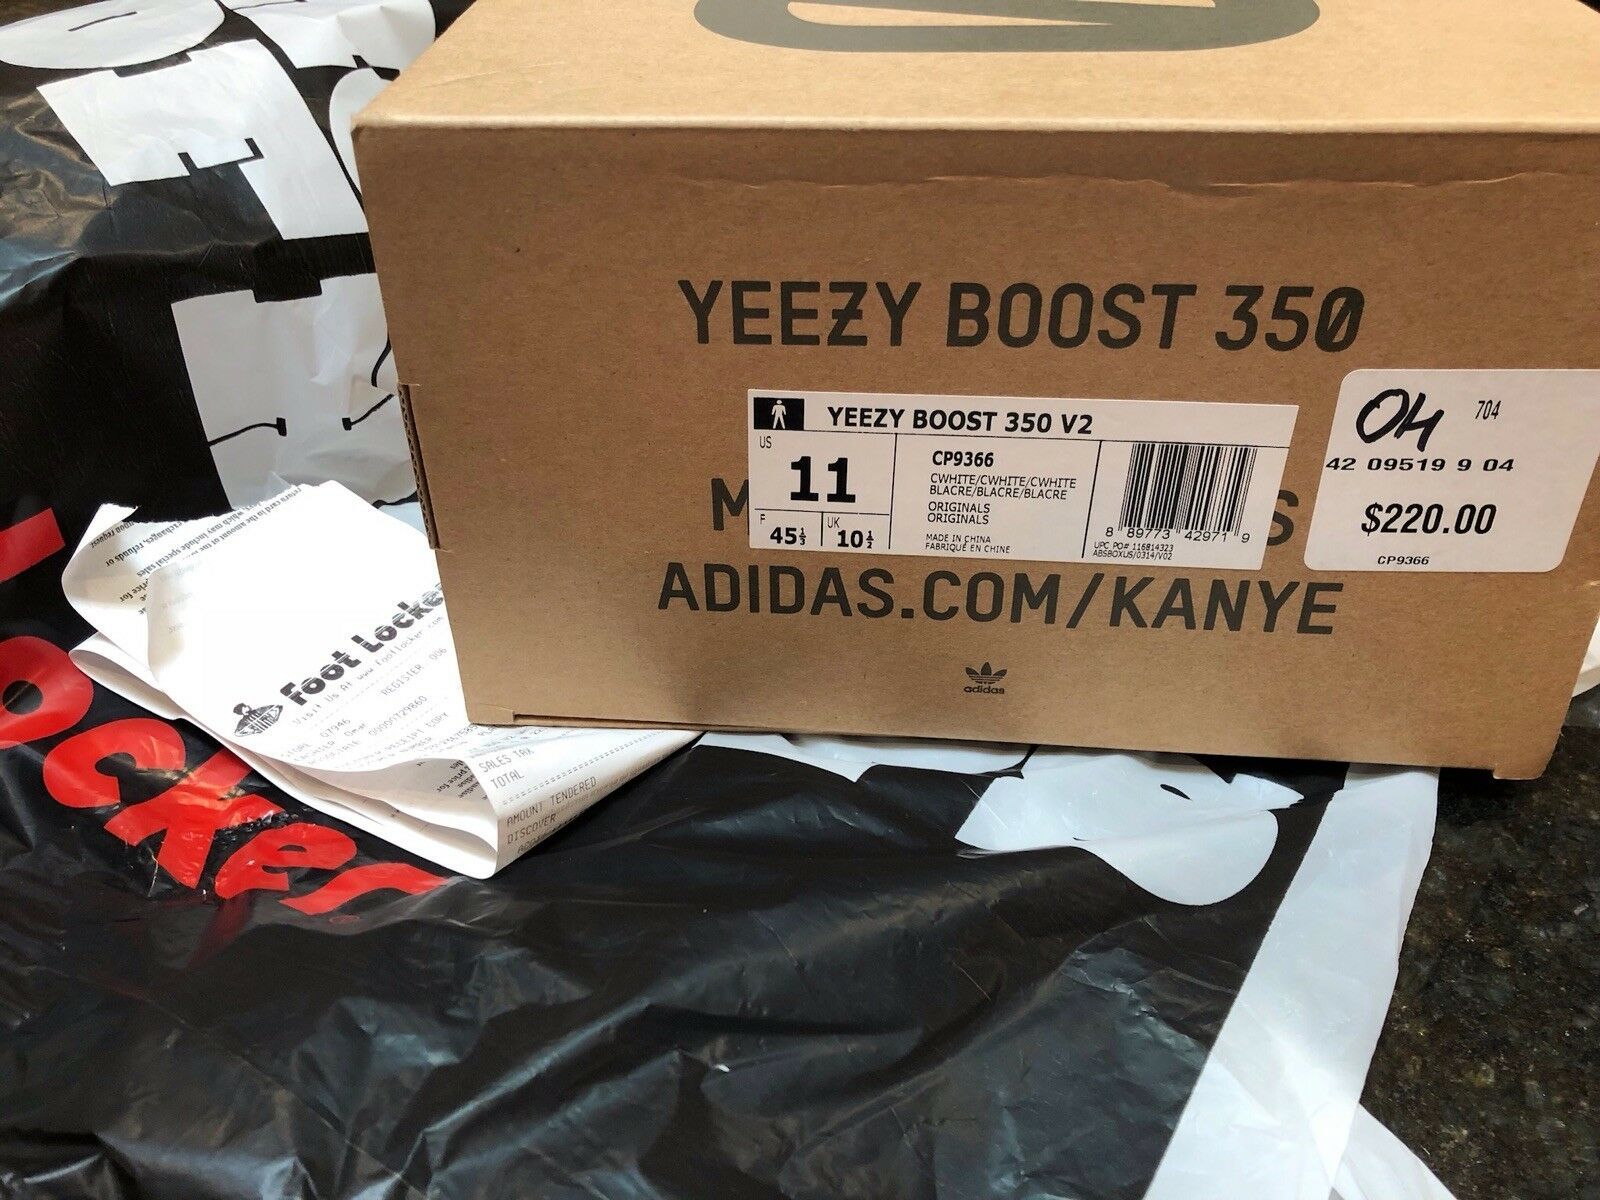 YEEZY BOOST 350 V2 Cream White Brand new and never worn Us Men Size 11